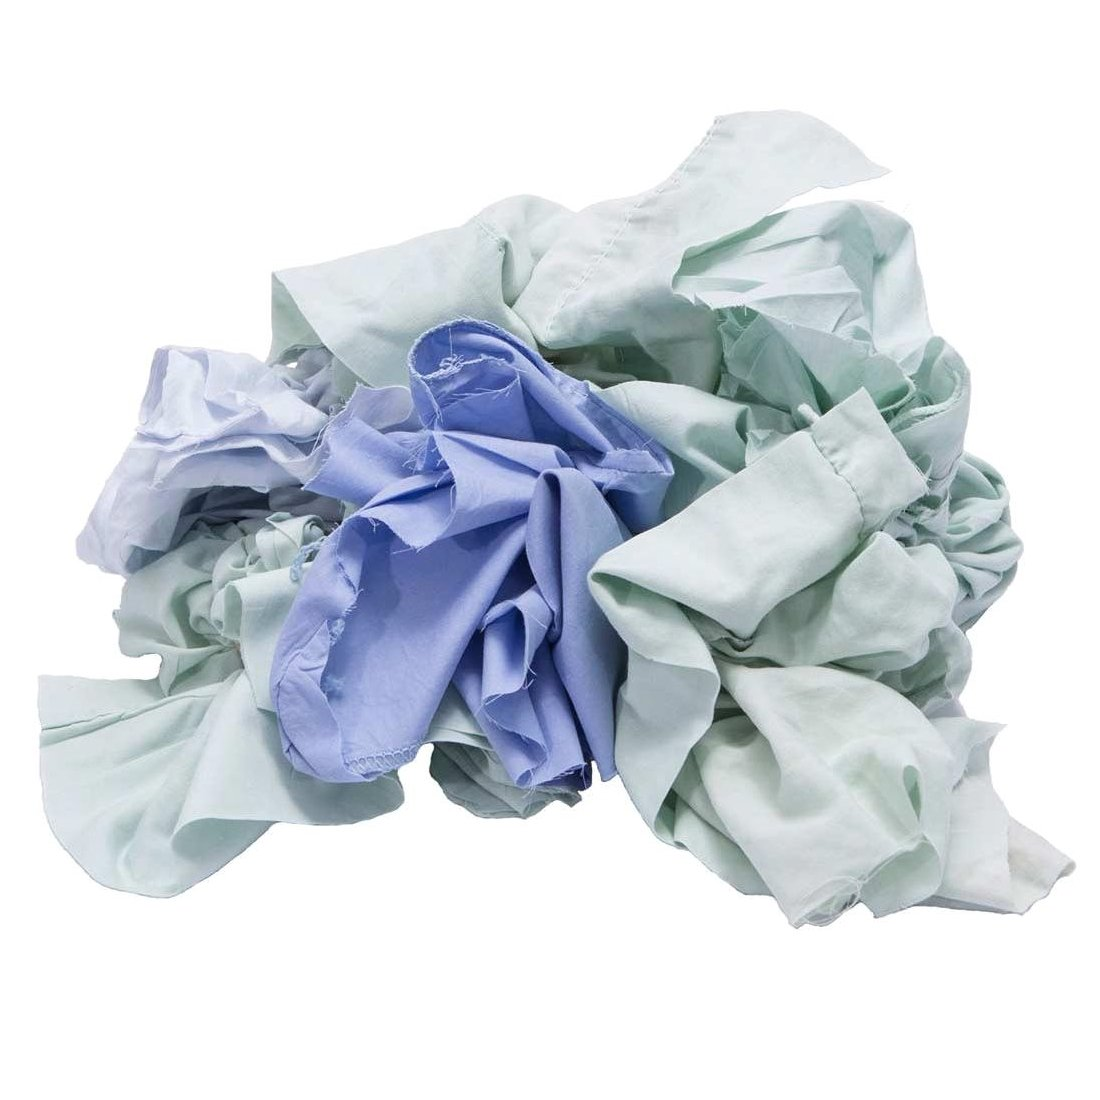 Pro-Clean Basics A99406 Recycled or Reclaimed Colored Sheeting Rags Pallet